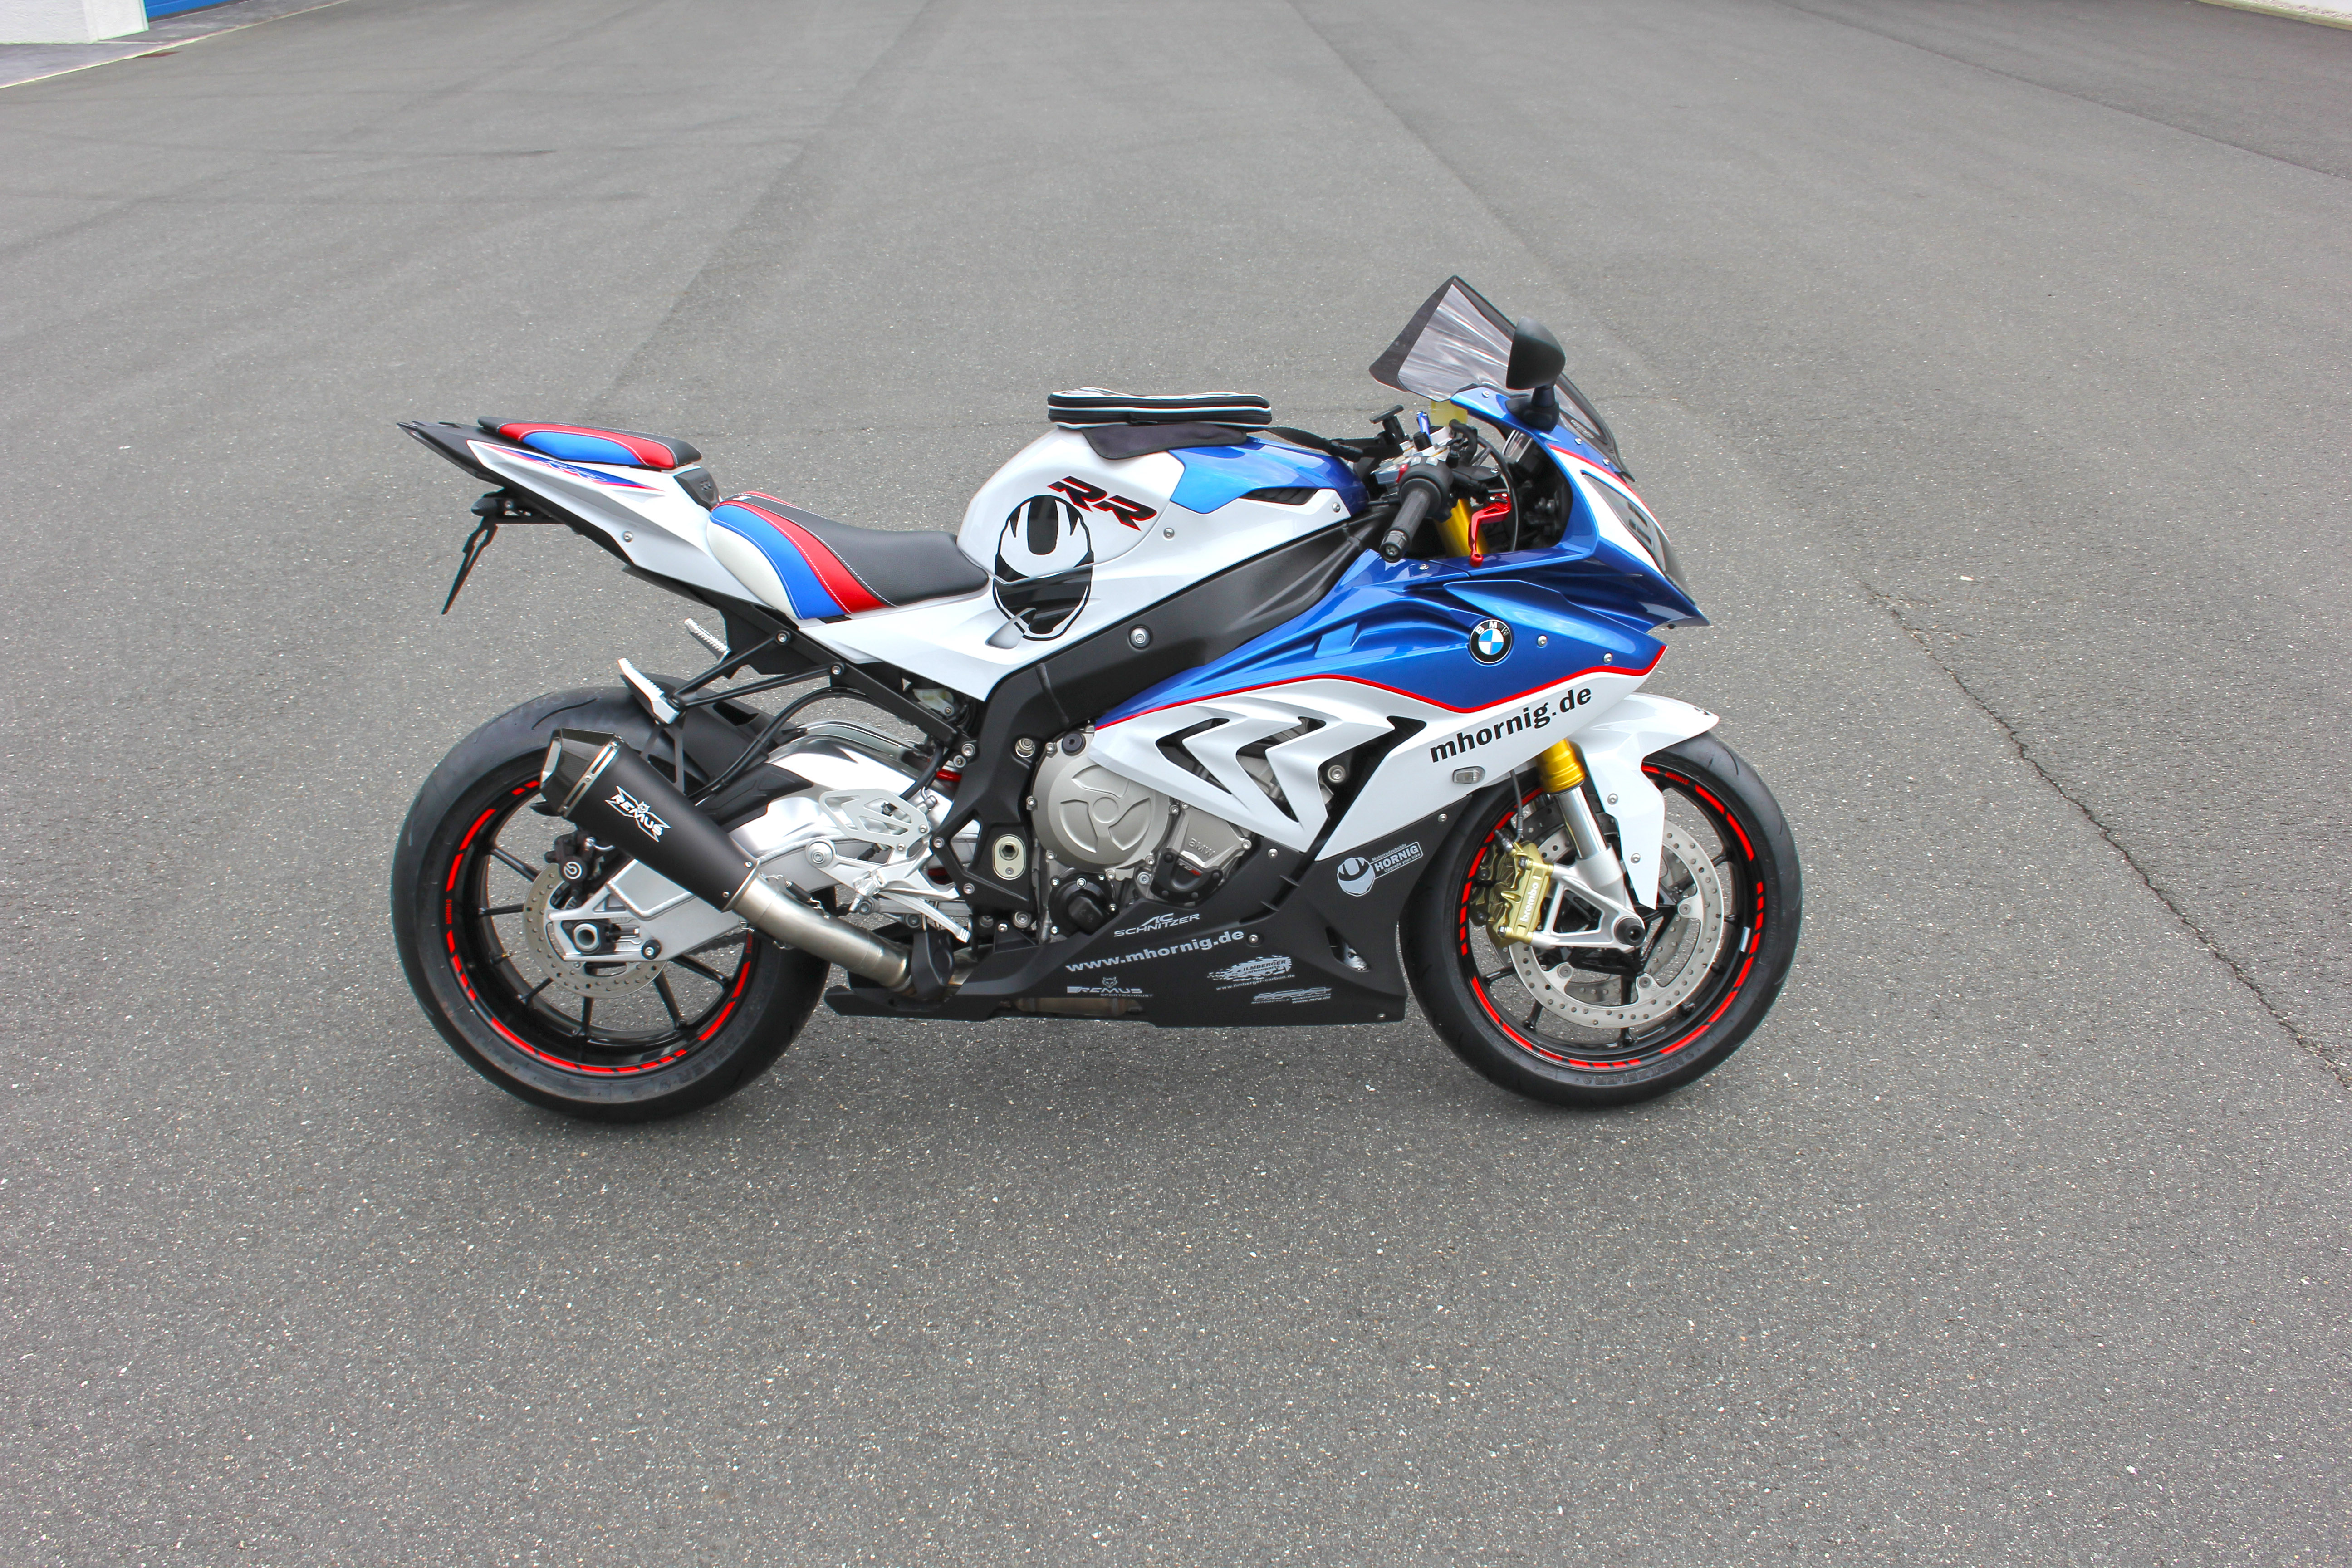 bmw s1000rr conversionhornig with more comfort and individuality